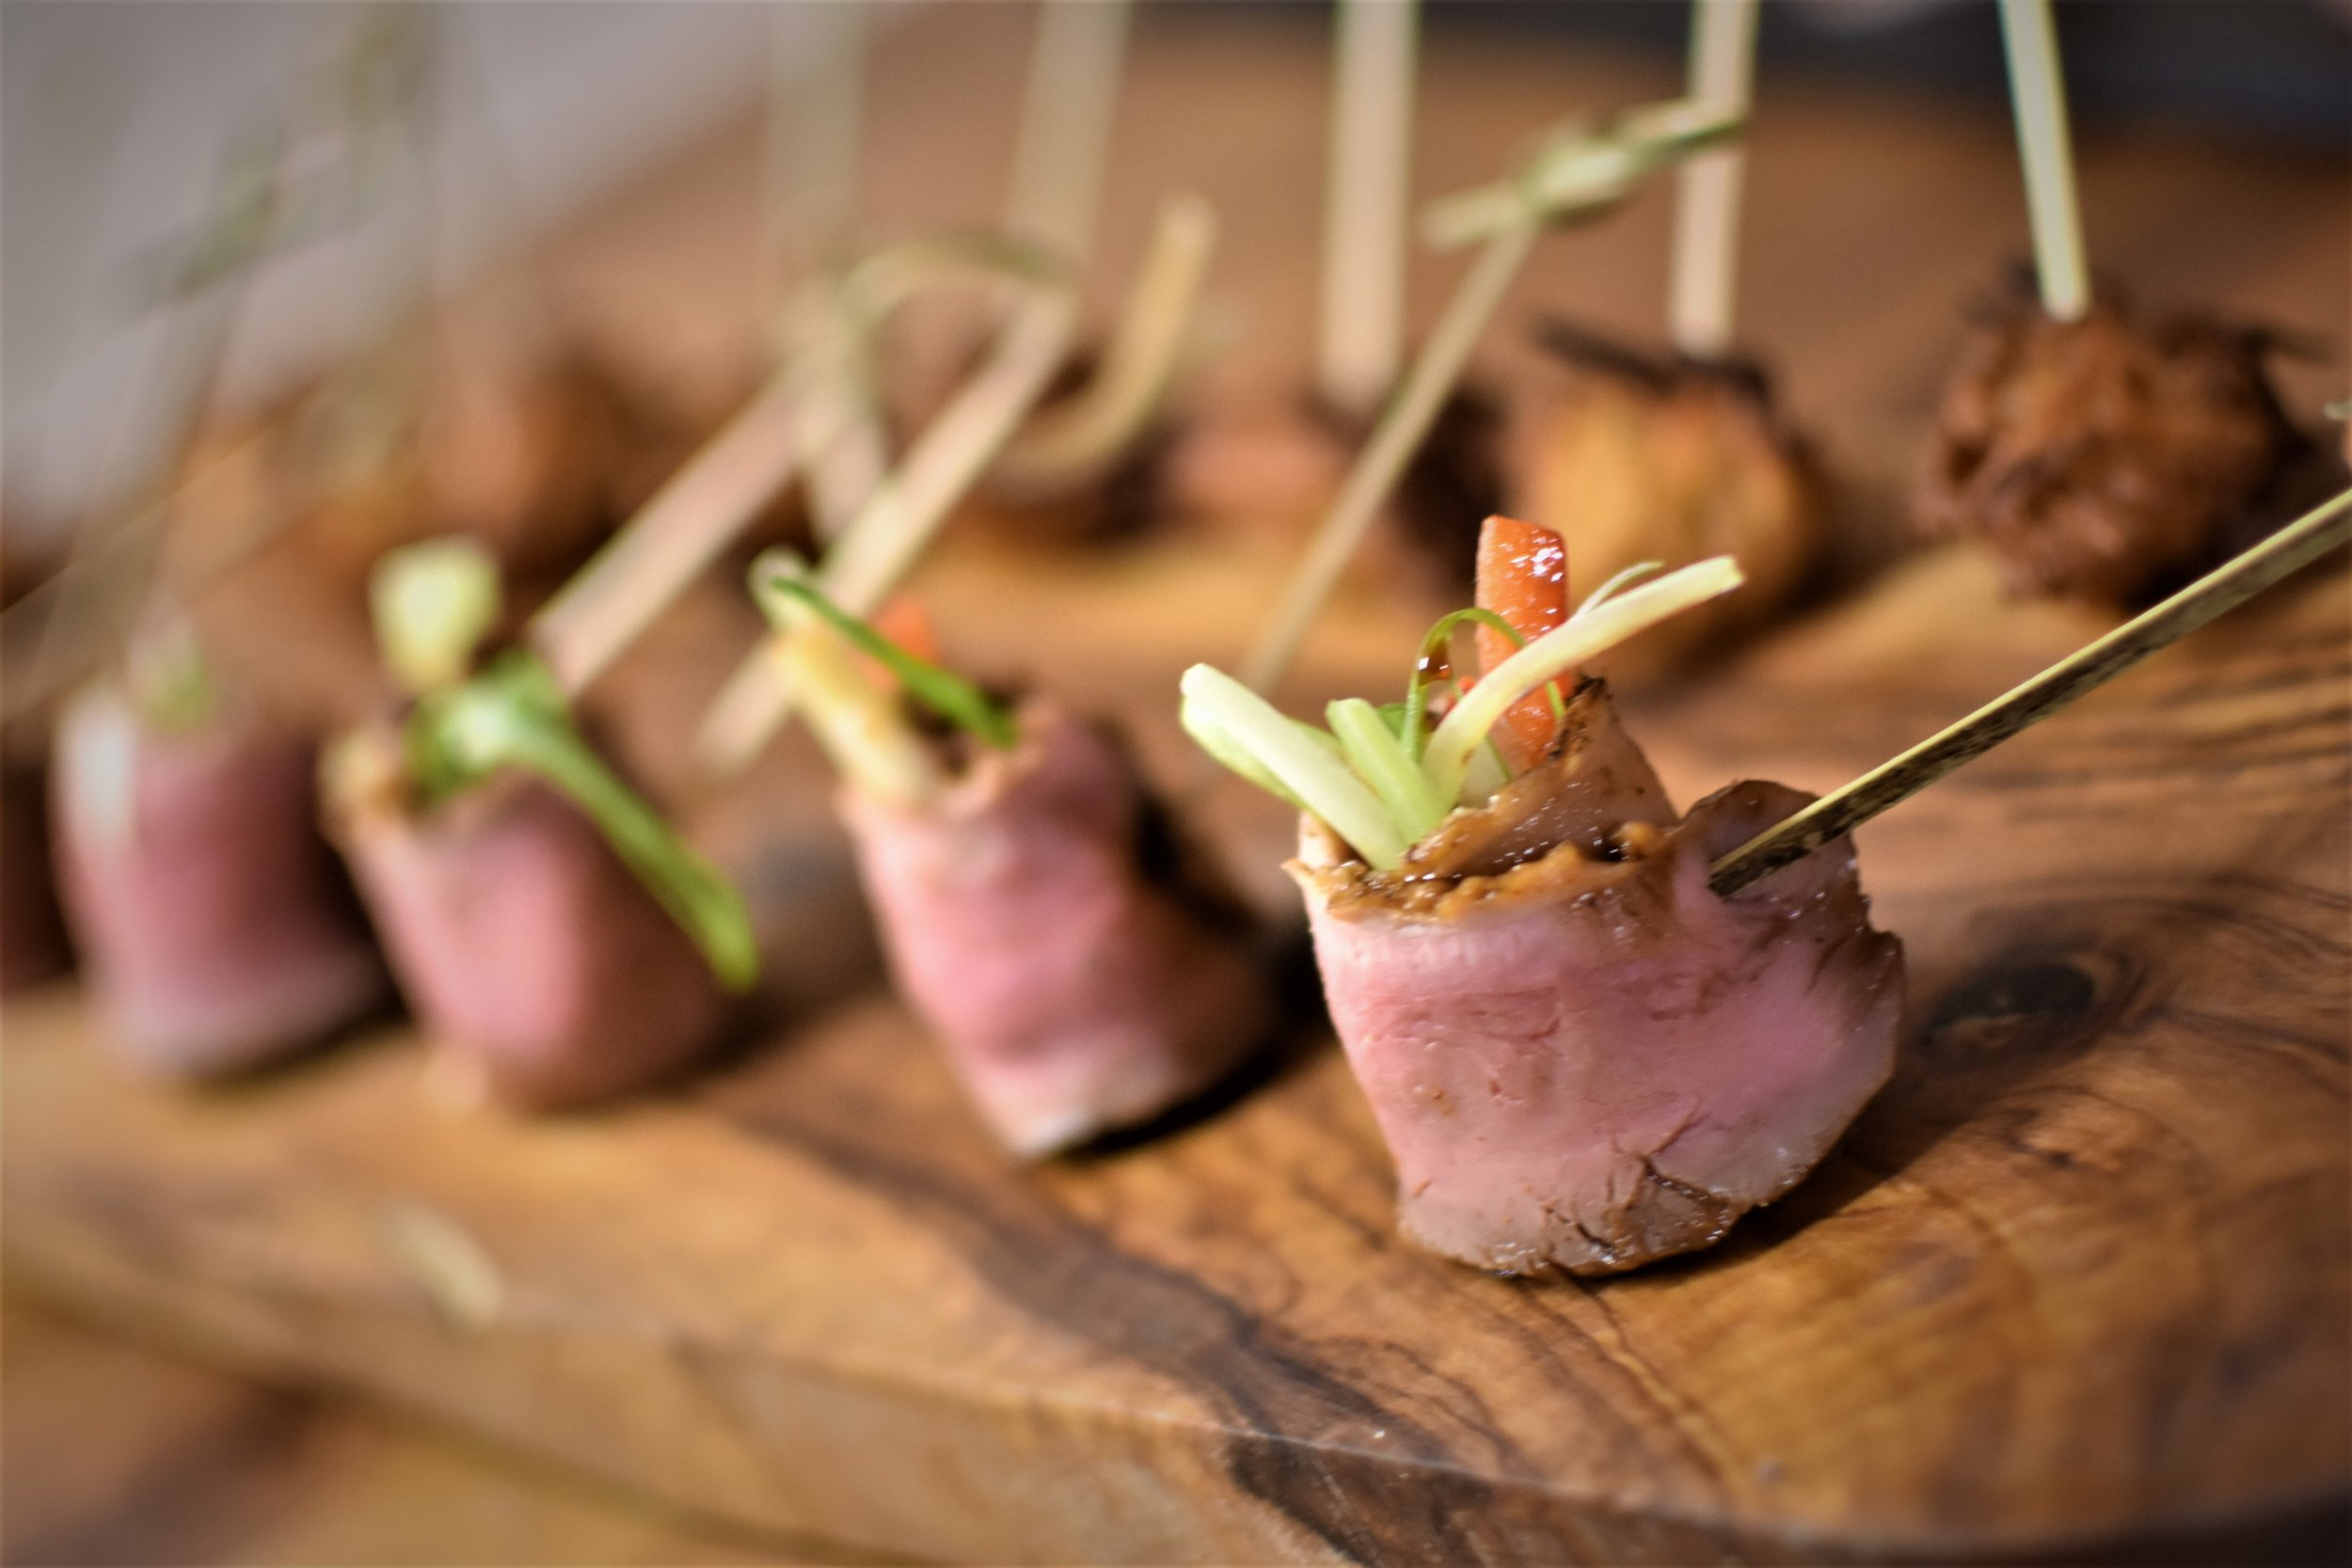 ChefGary Private Chef - Canapes duck